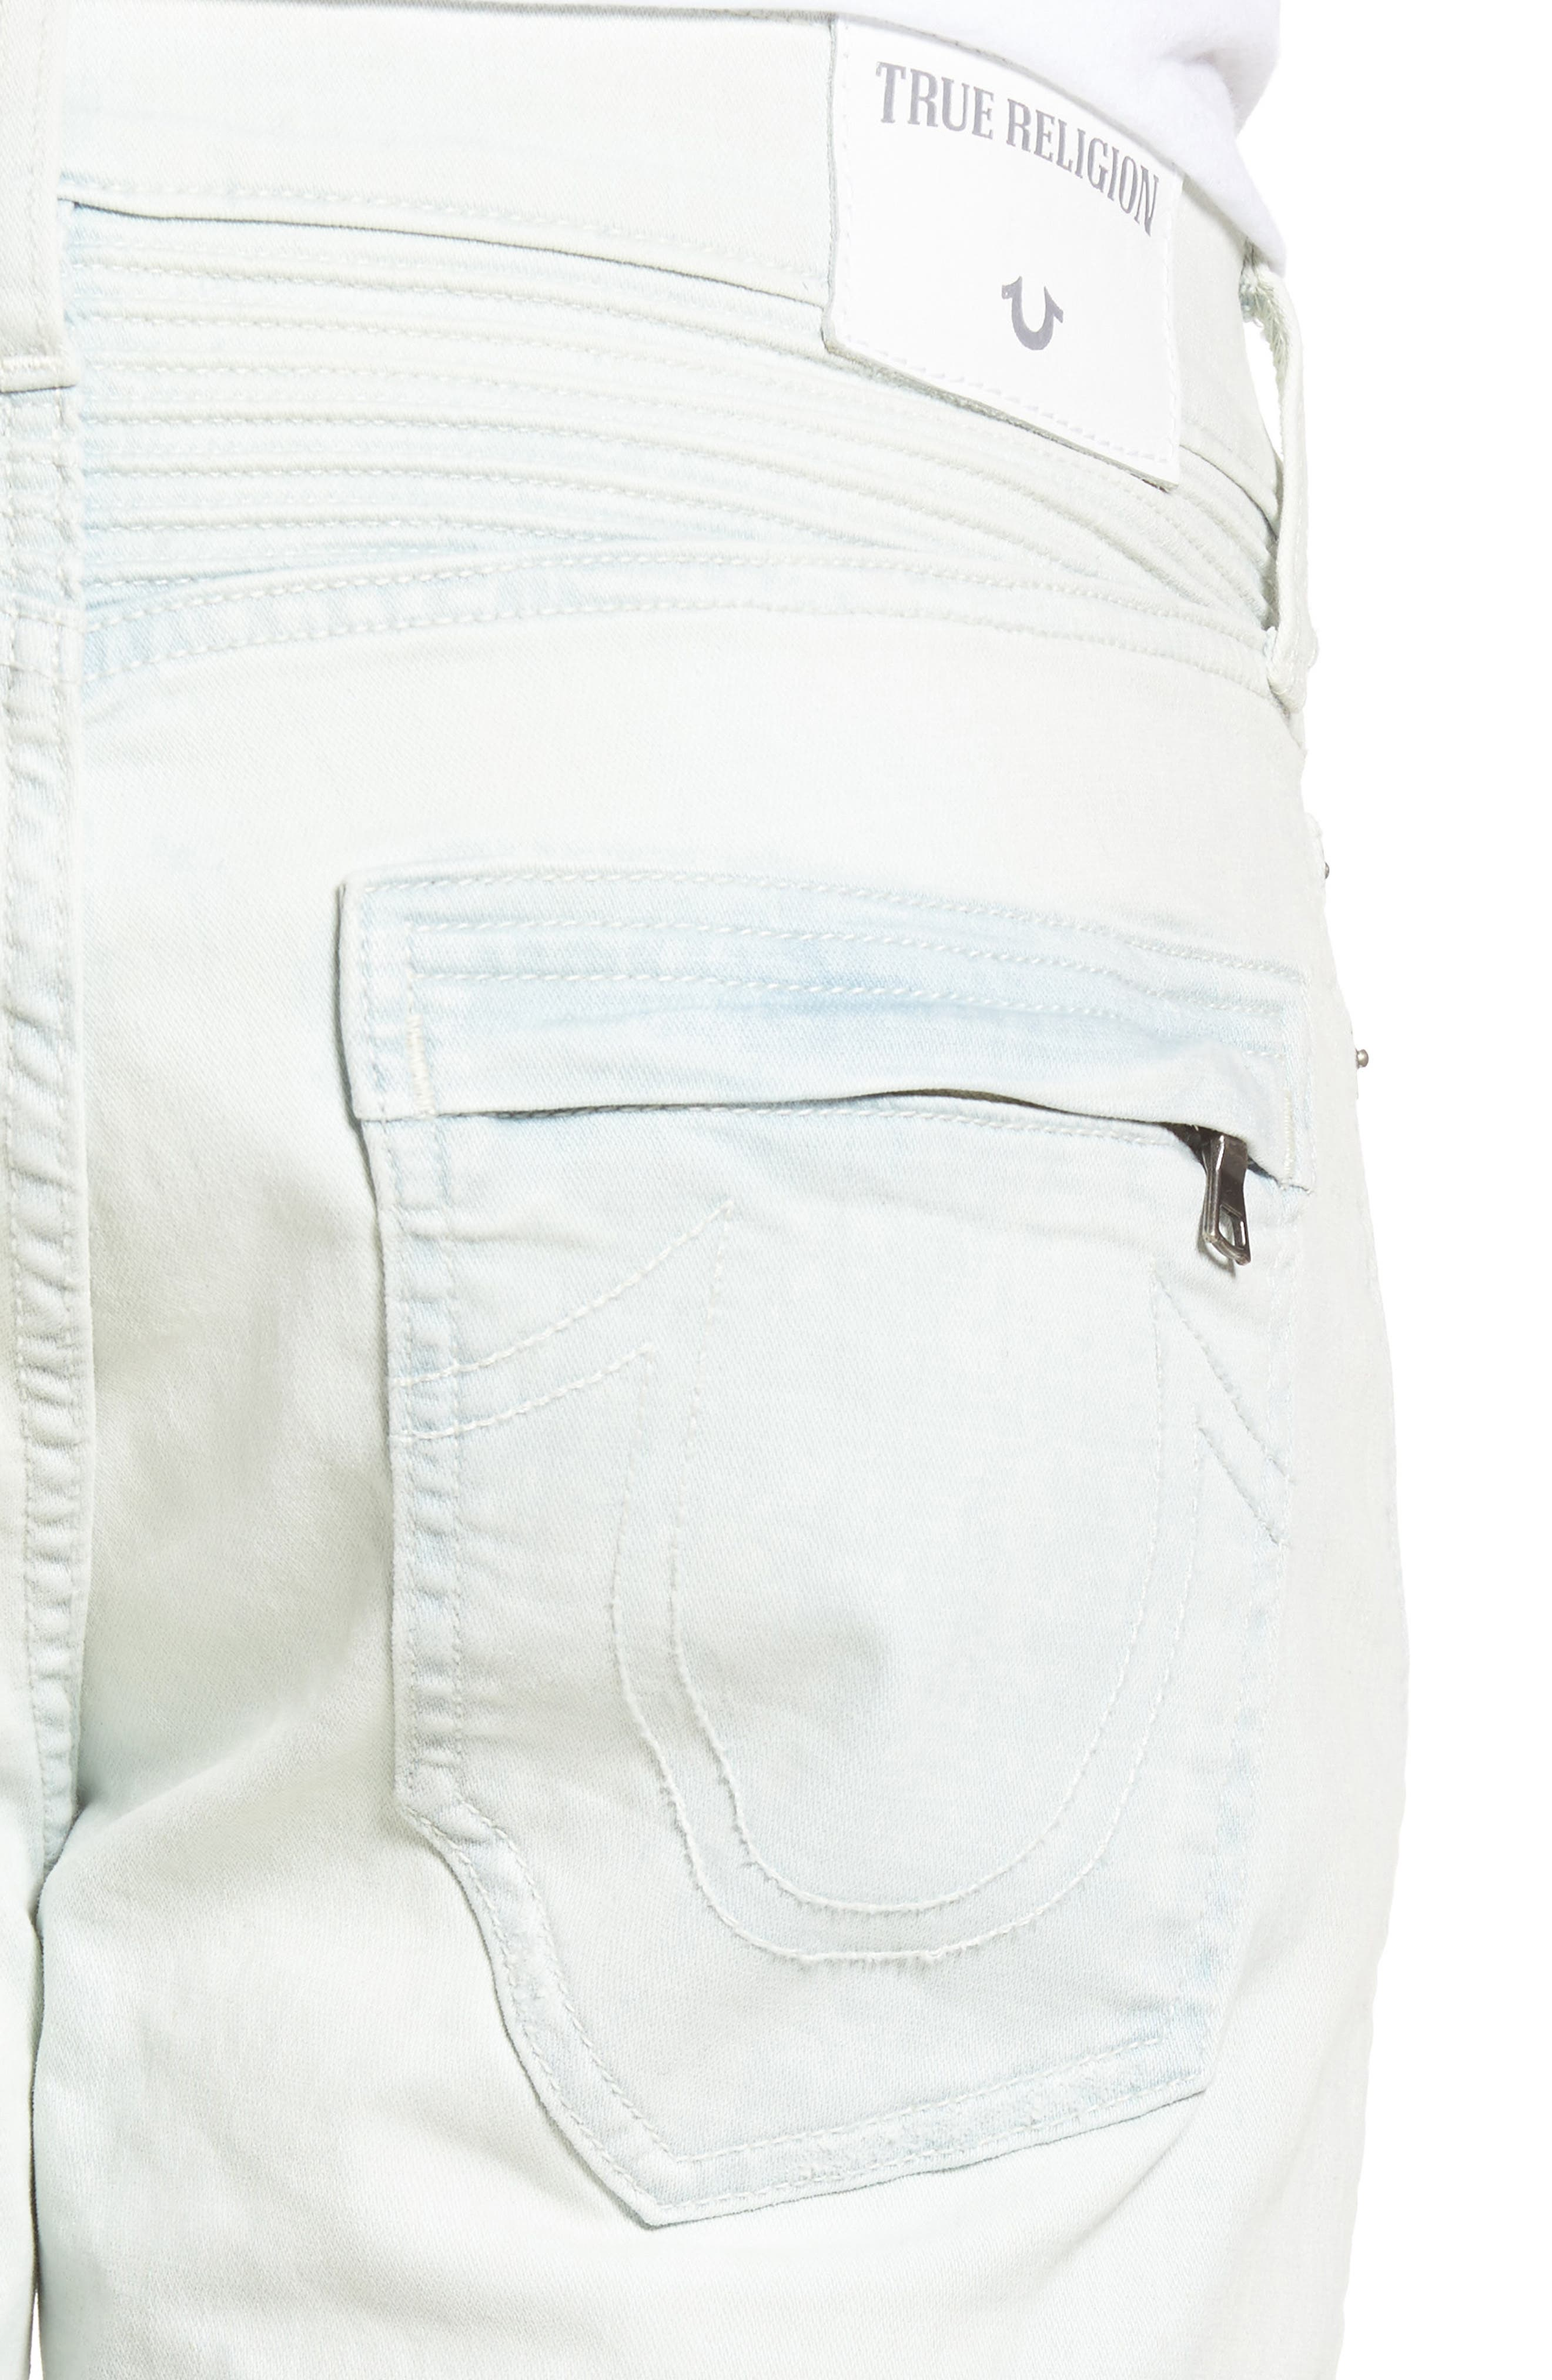 Rocco Skinny Fit Moto Jeans,                             Alternate thumbnail 4, color,                             Light Daze